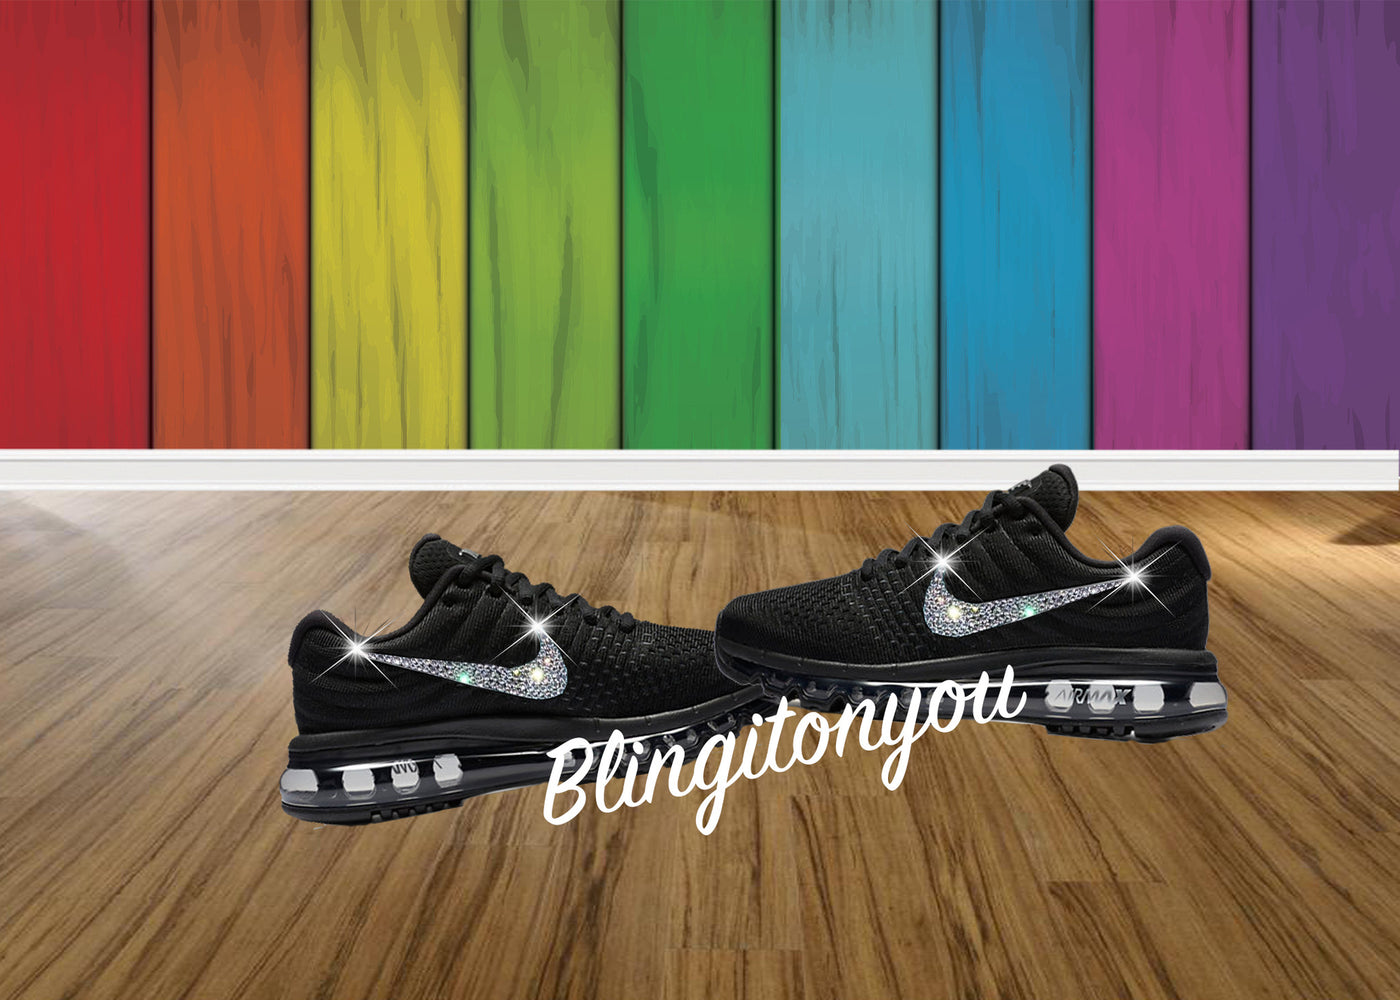 1a9fed7ffaca Blinged Women's Black Nike Air Max 2017 Shoes Bedazzled with Swarovski  Crystals - Blingitonyou - 1 ...